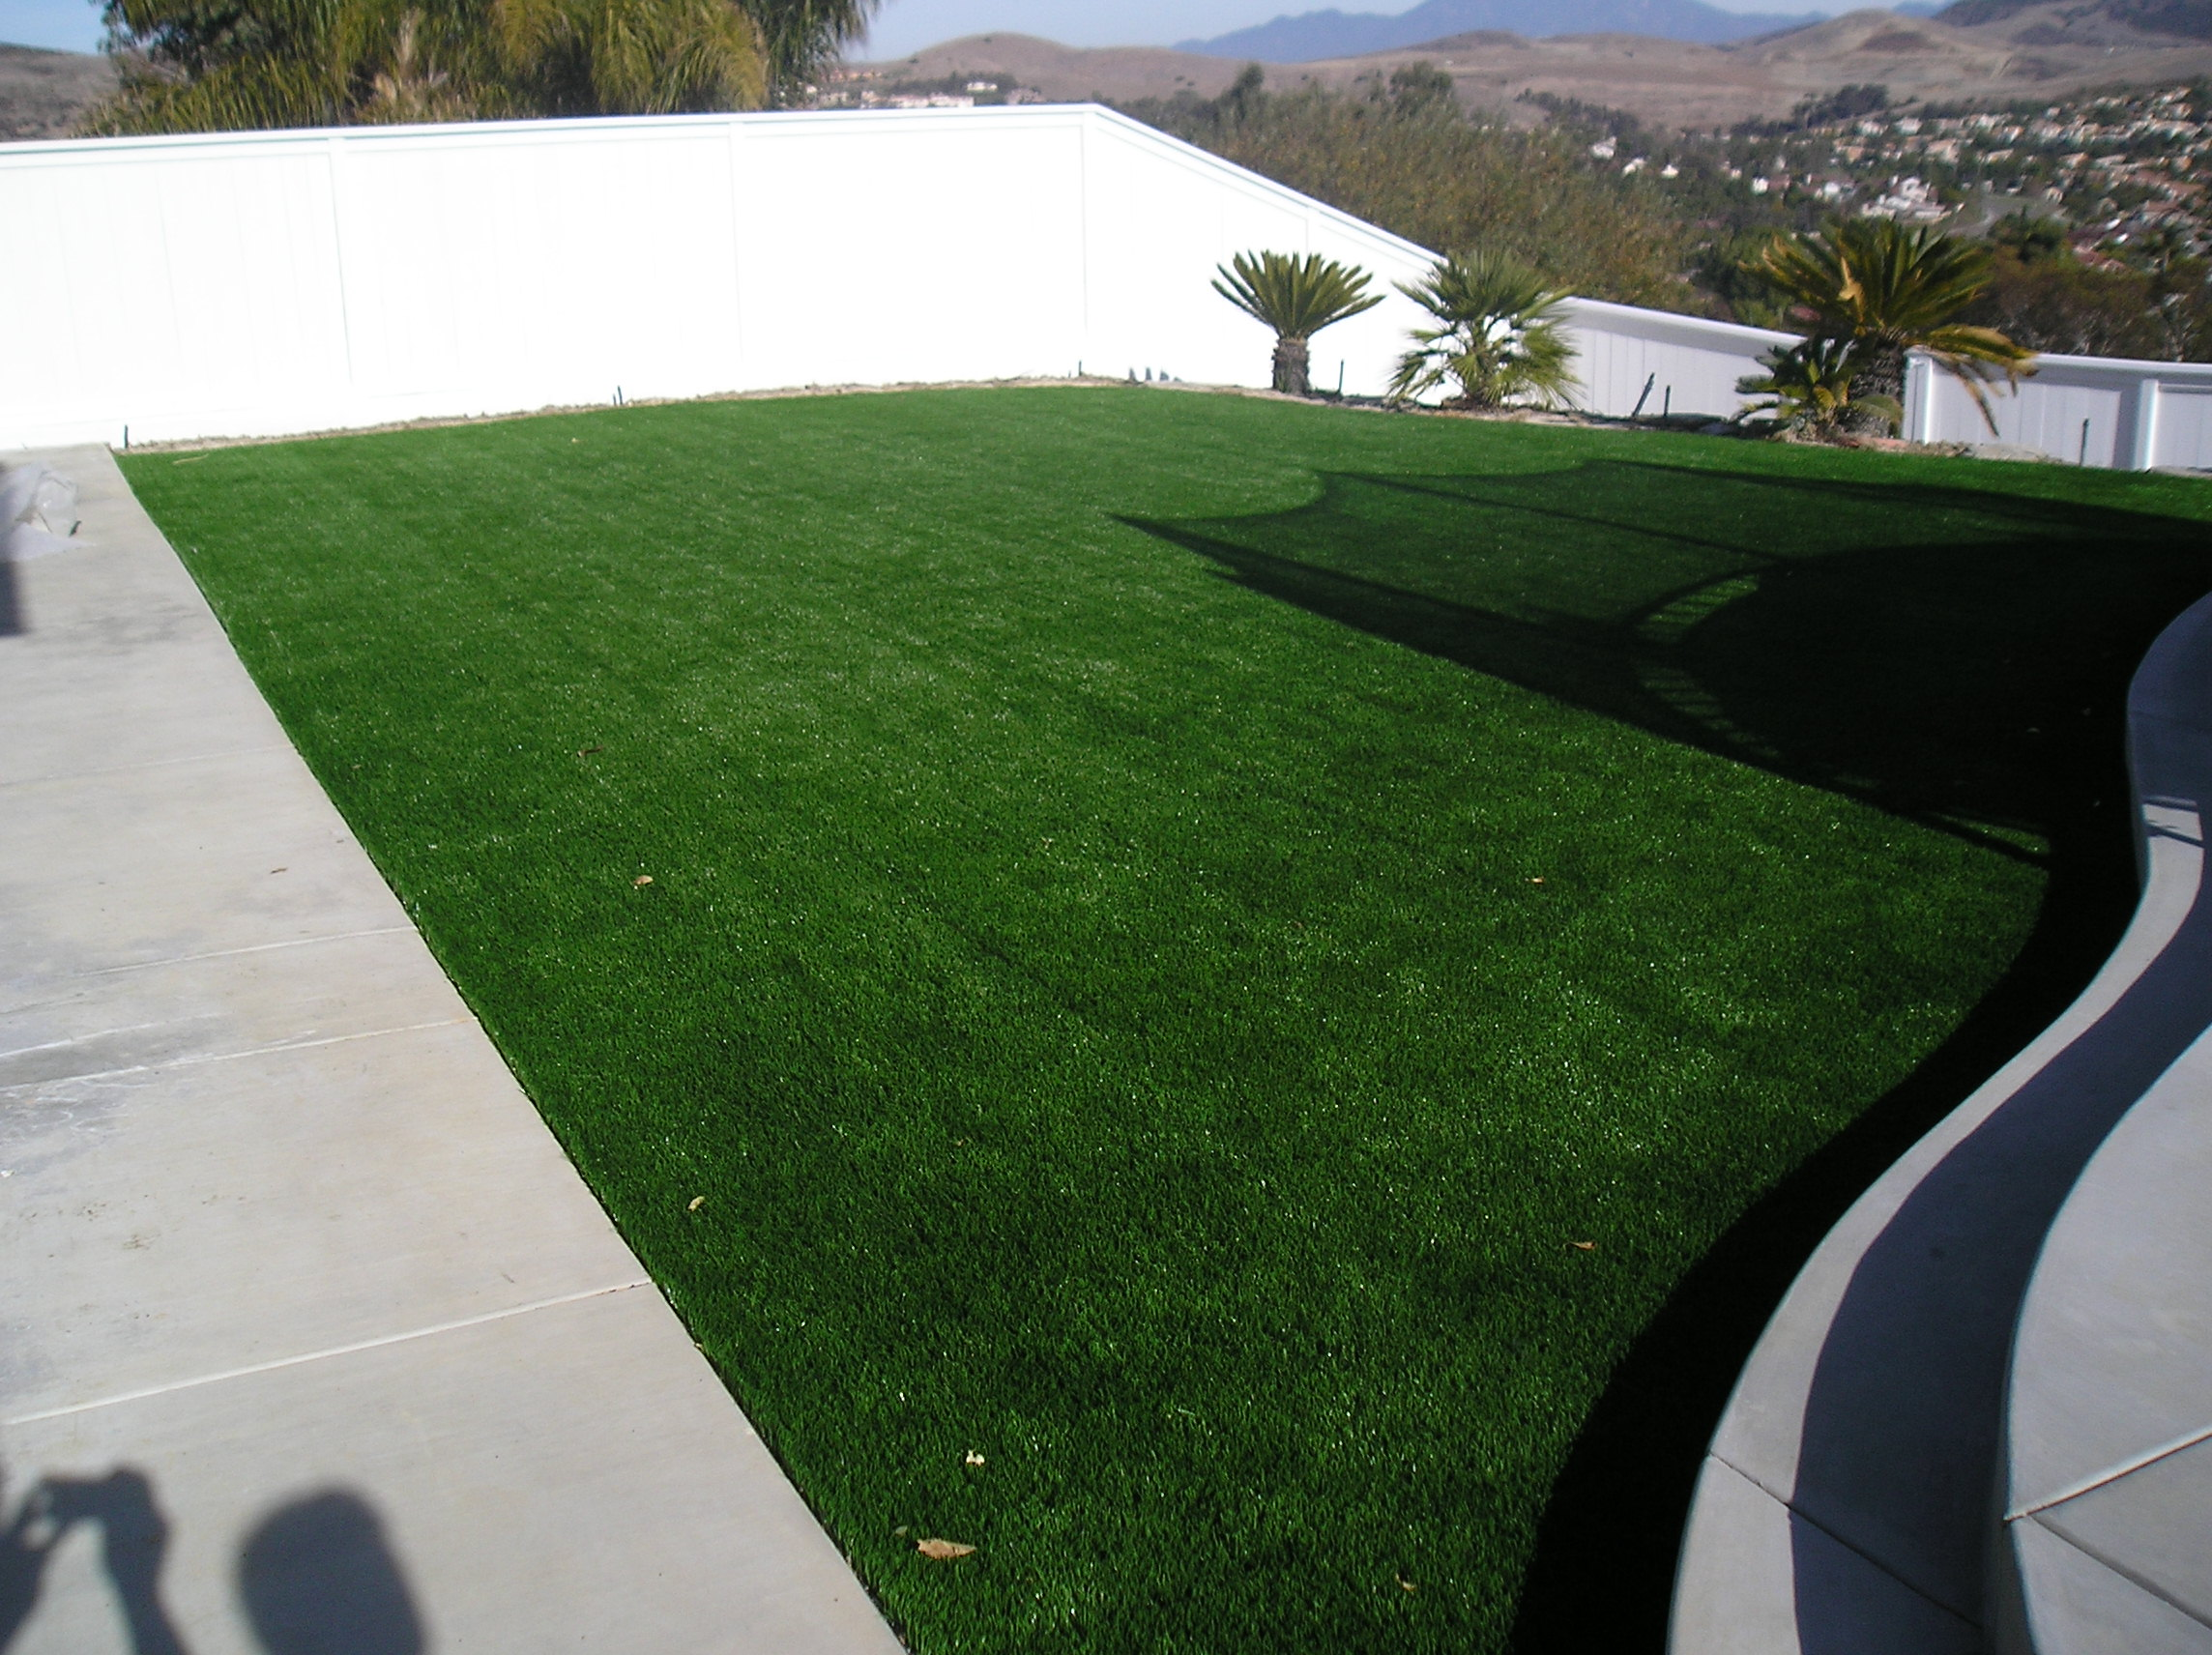 Olive-92 Stemgrass artificial lawn,synthetic lawn,fake lawn,turf lawn,fake grass lawn,artificial lawn,synthetic lawn,fake lawn,turf lawn,fake grass lawn